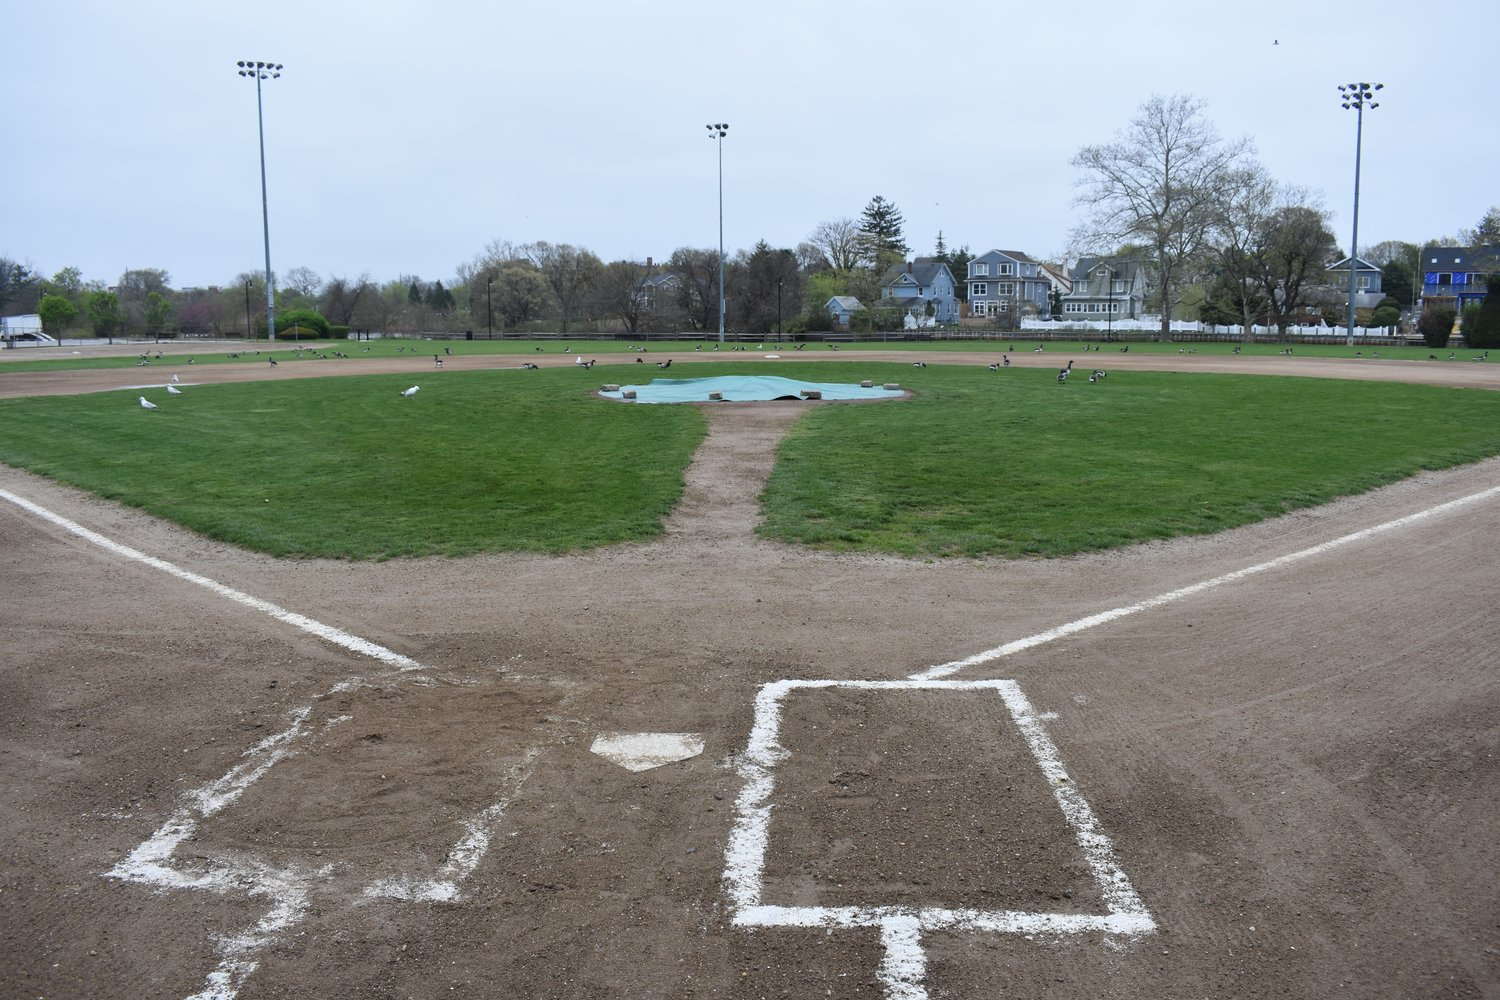 Parents and players have successfully advocated for some improvements to the field, where the South Side High School varsity baseball team plays its home games, and now look to add other amenities, including a scoreboard and batting cages.